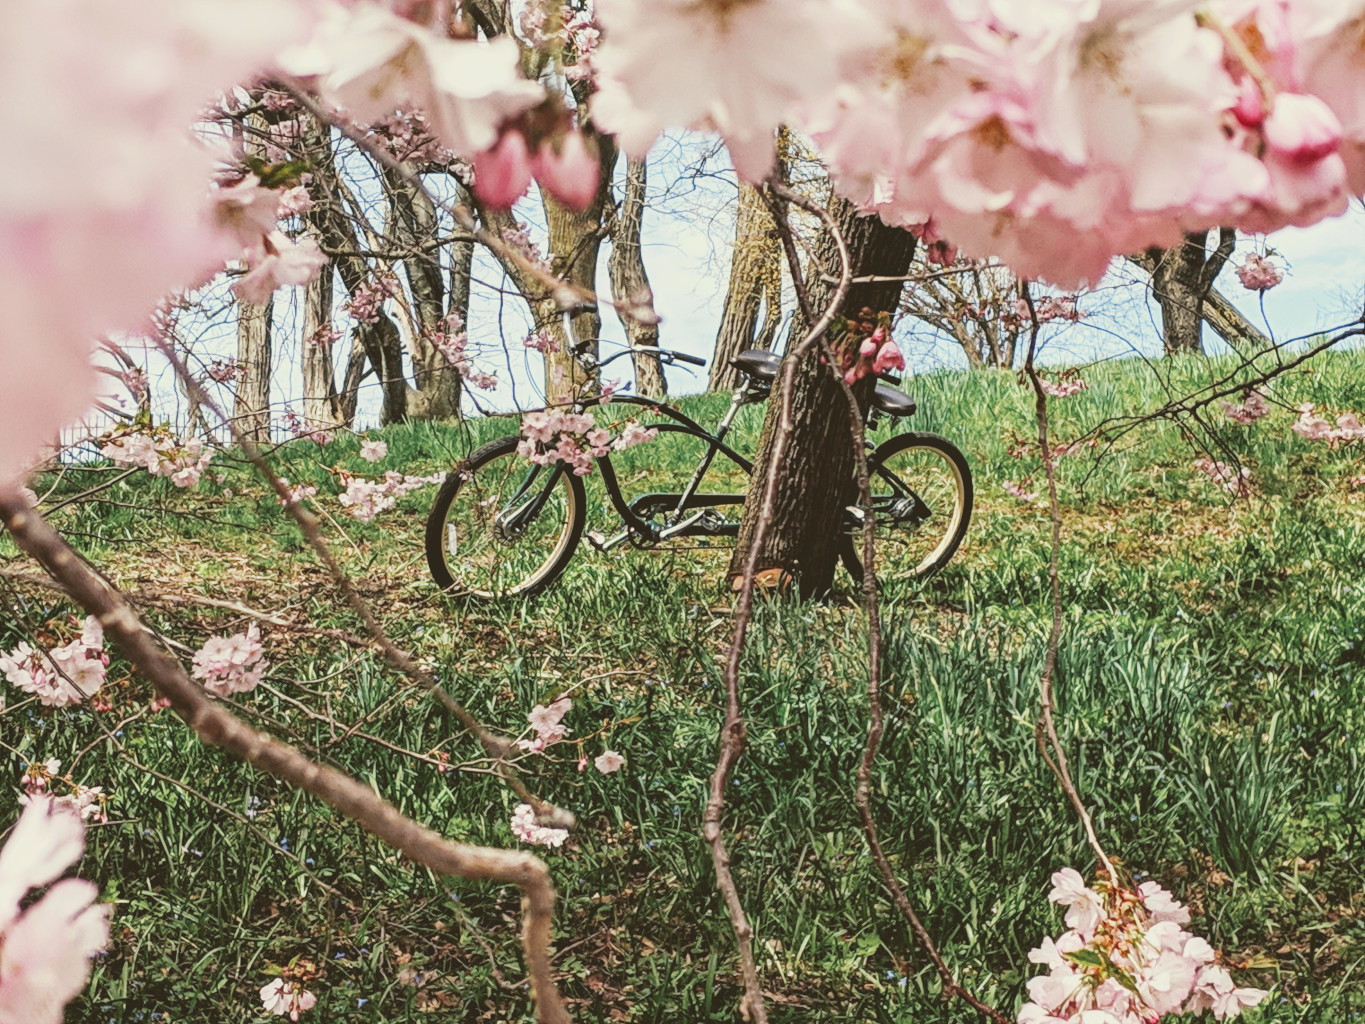 Blooming Magnificient – A Bicycle Built for Two